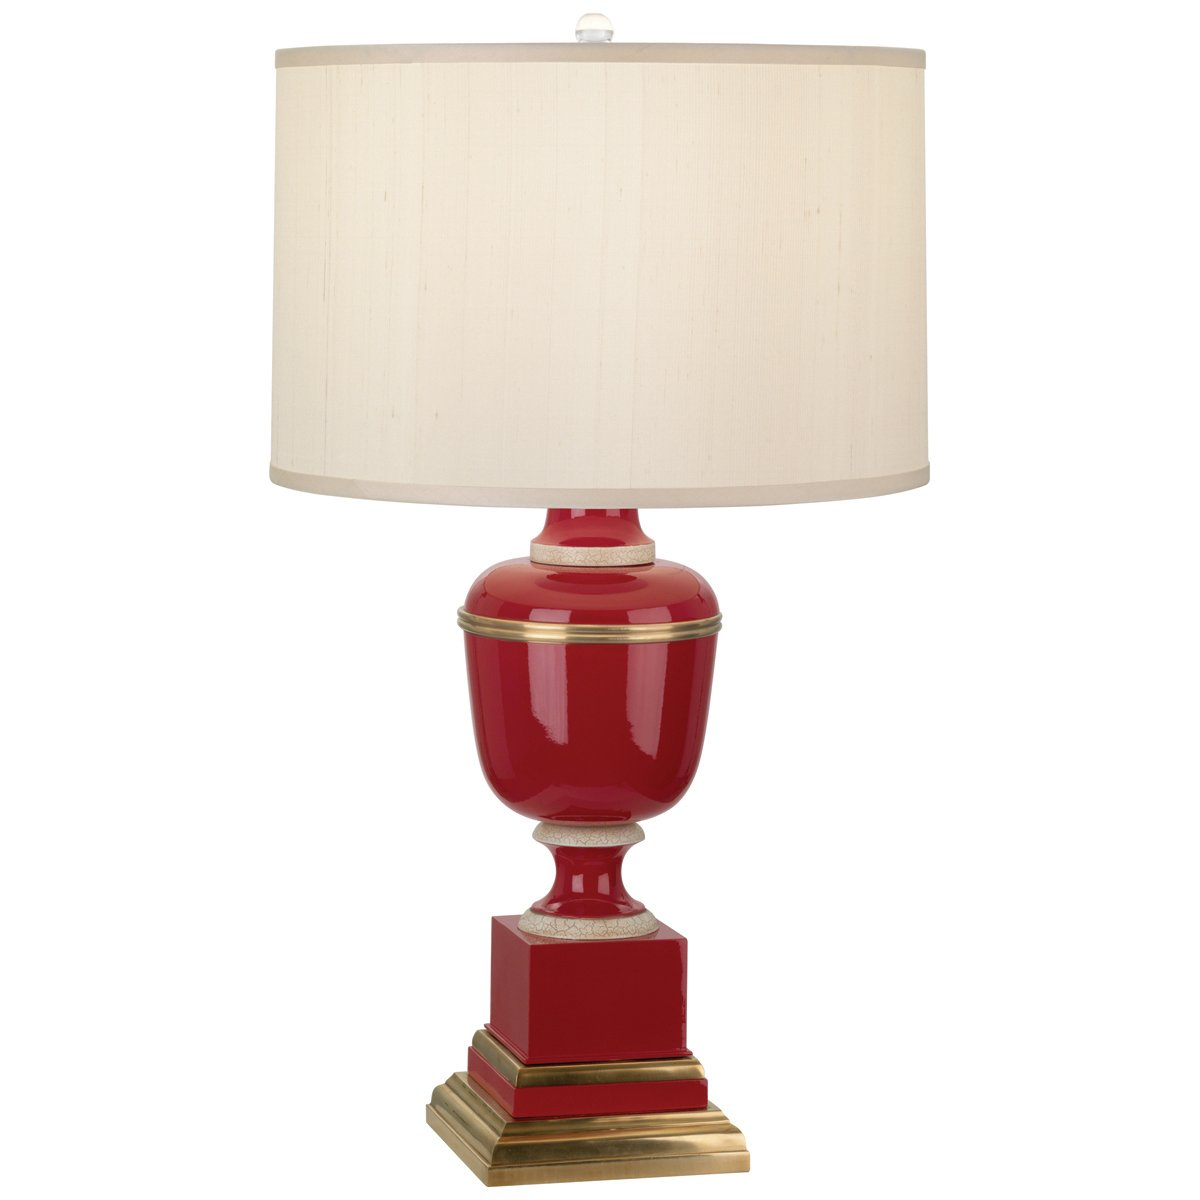 Natural   Fabric   Design   Shade   Brass   Paint   Table   Lamp   Red